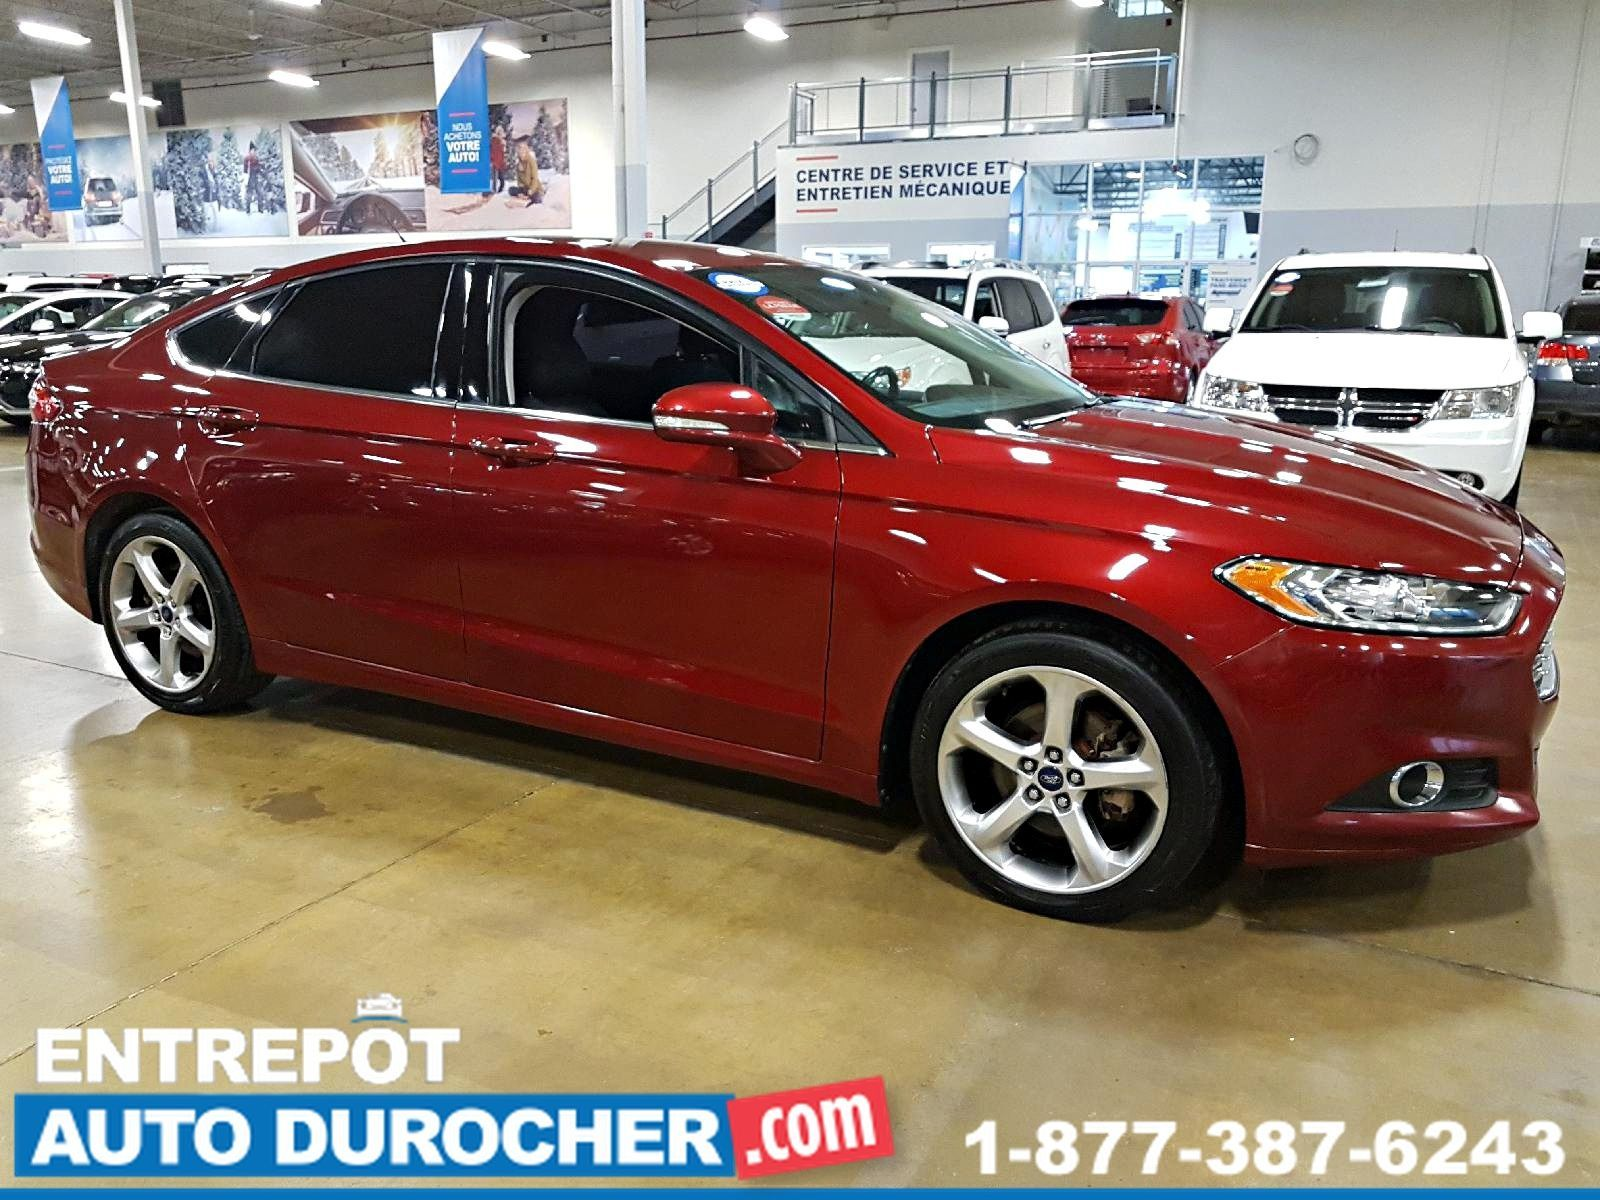 2013 Ford Fusion SE AWD AUTOMATIQUE, AIR CLIMATISÉ HEATED SEATS